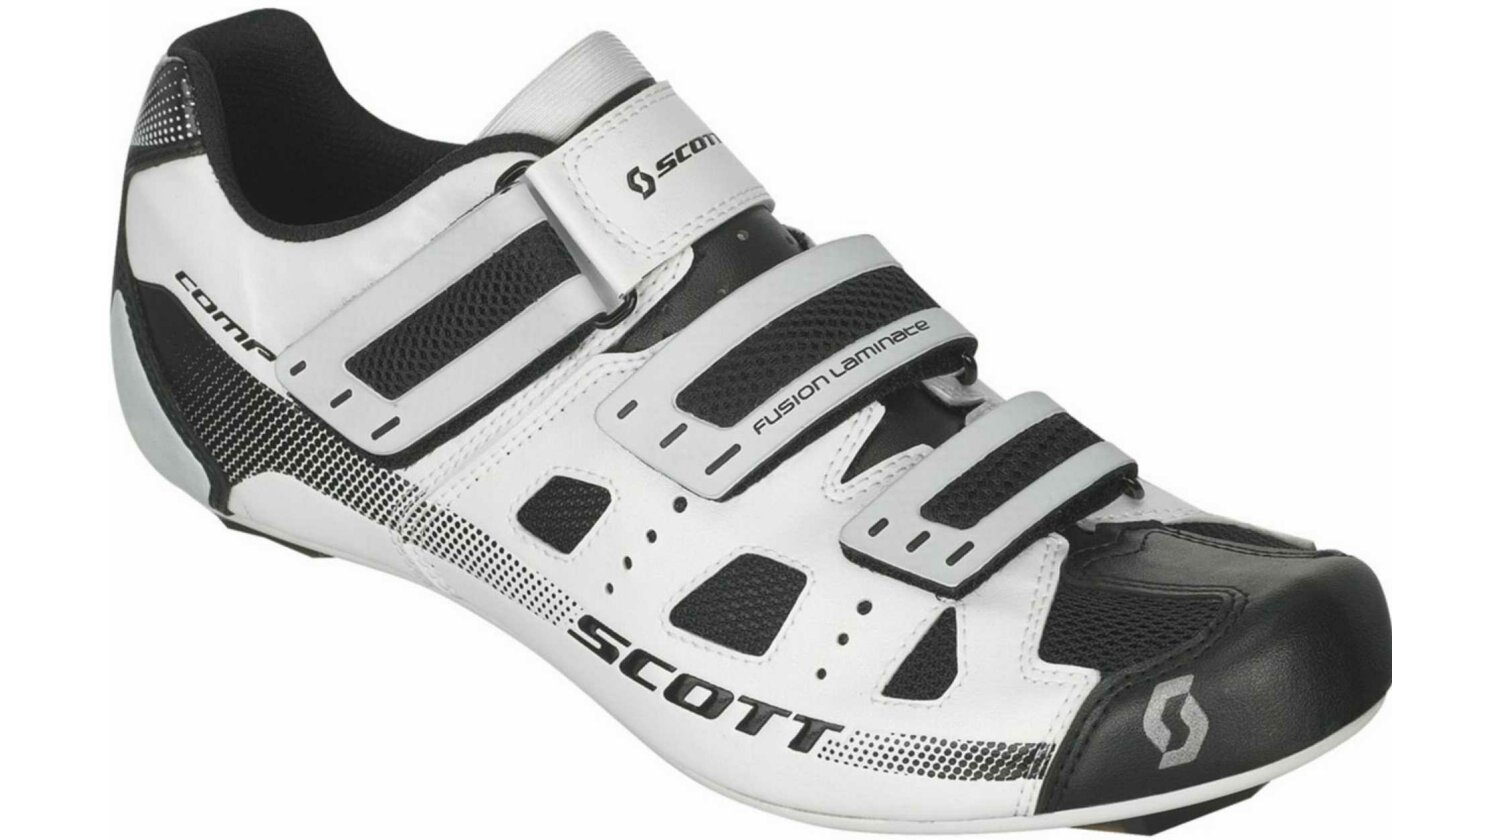 Scott Road Comp Schuh white/black 40